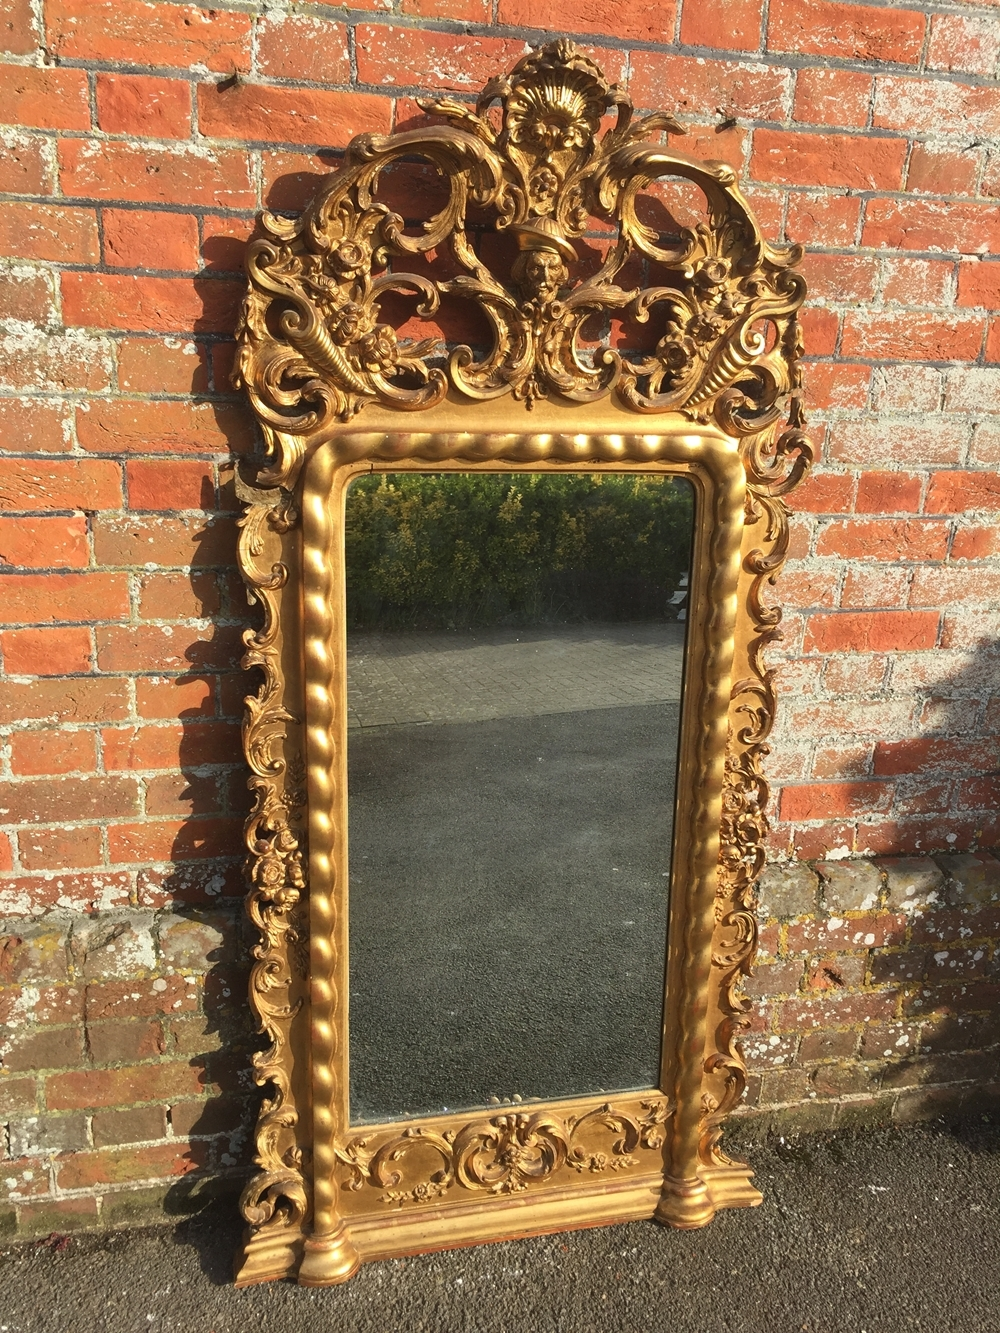 Large Overmantle Mirrors Uk Antique Overmantle Mirrors For Sale In Large Antique Mirror For Sale (View 5 of 15)